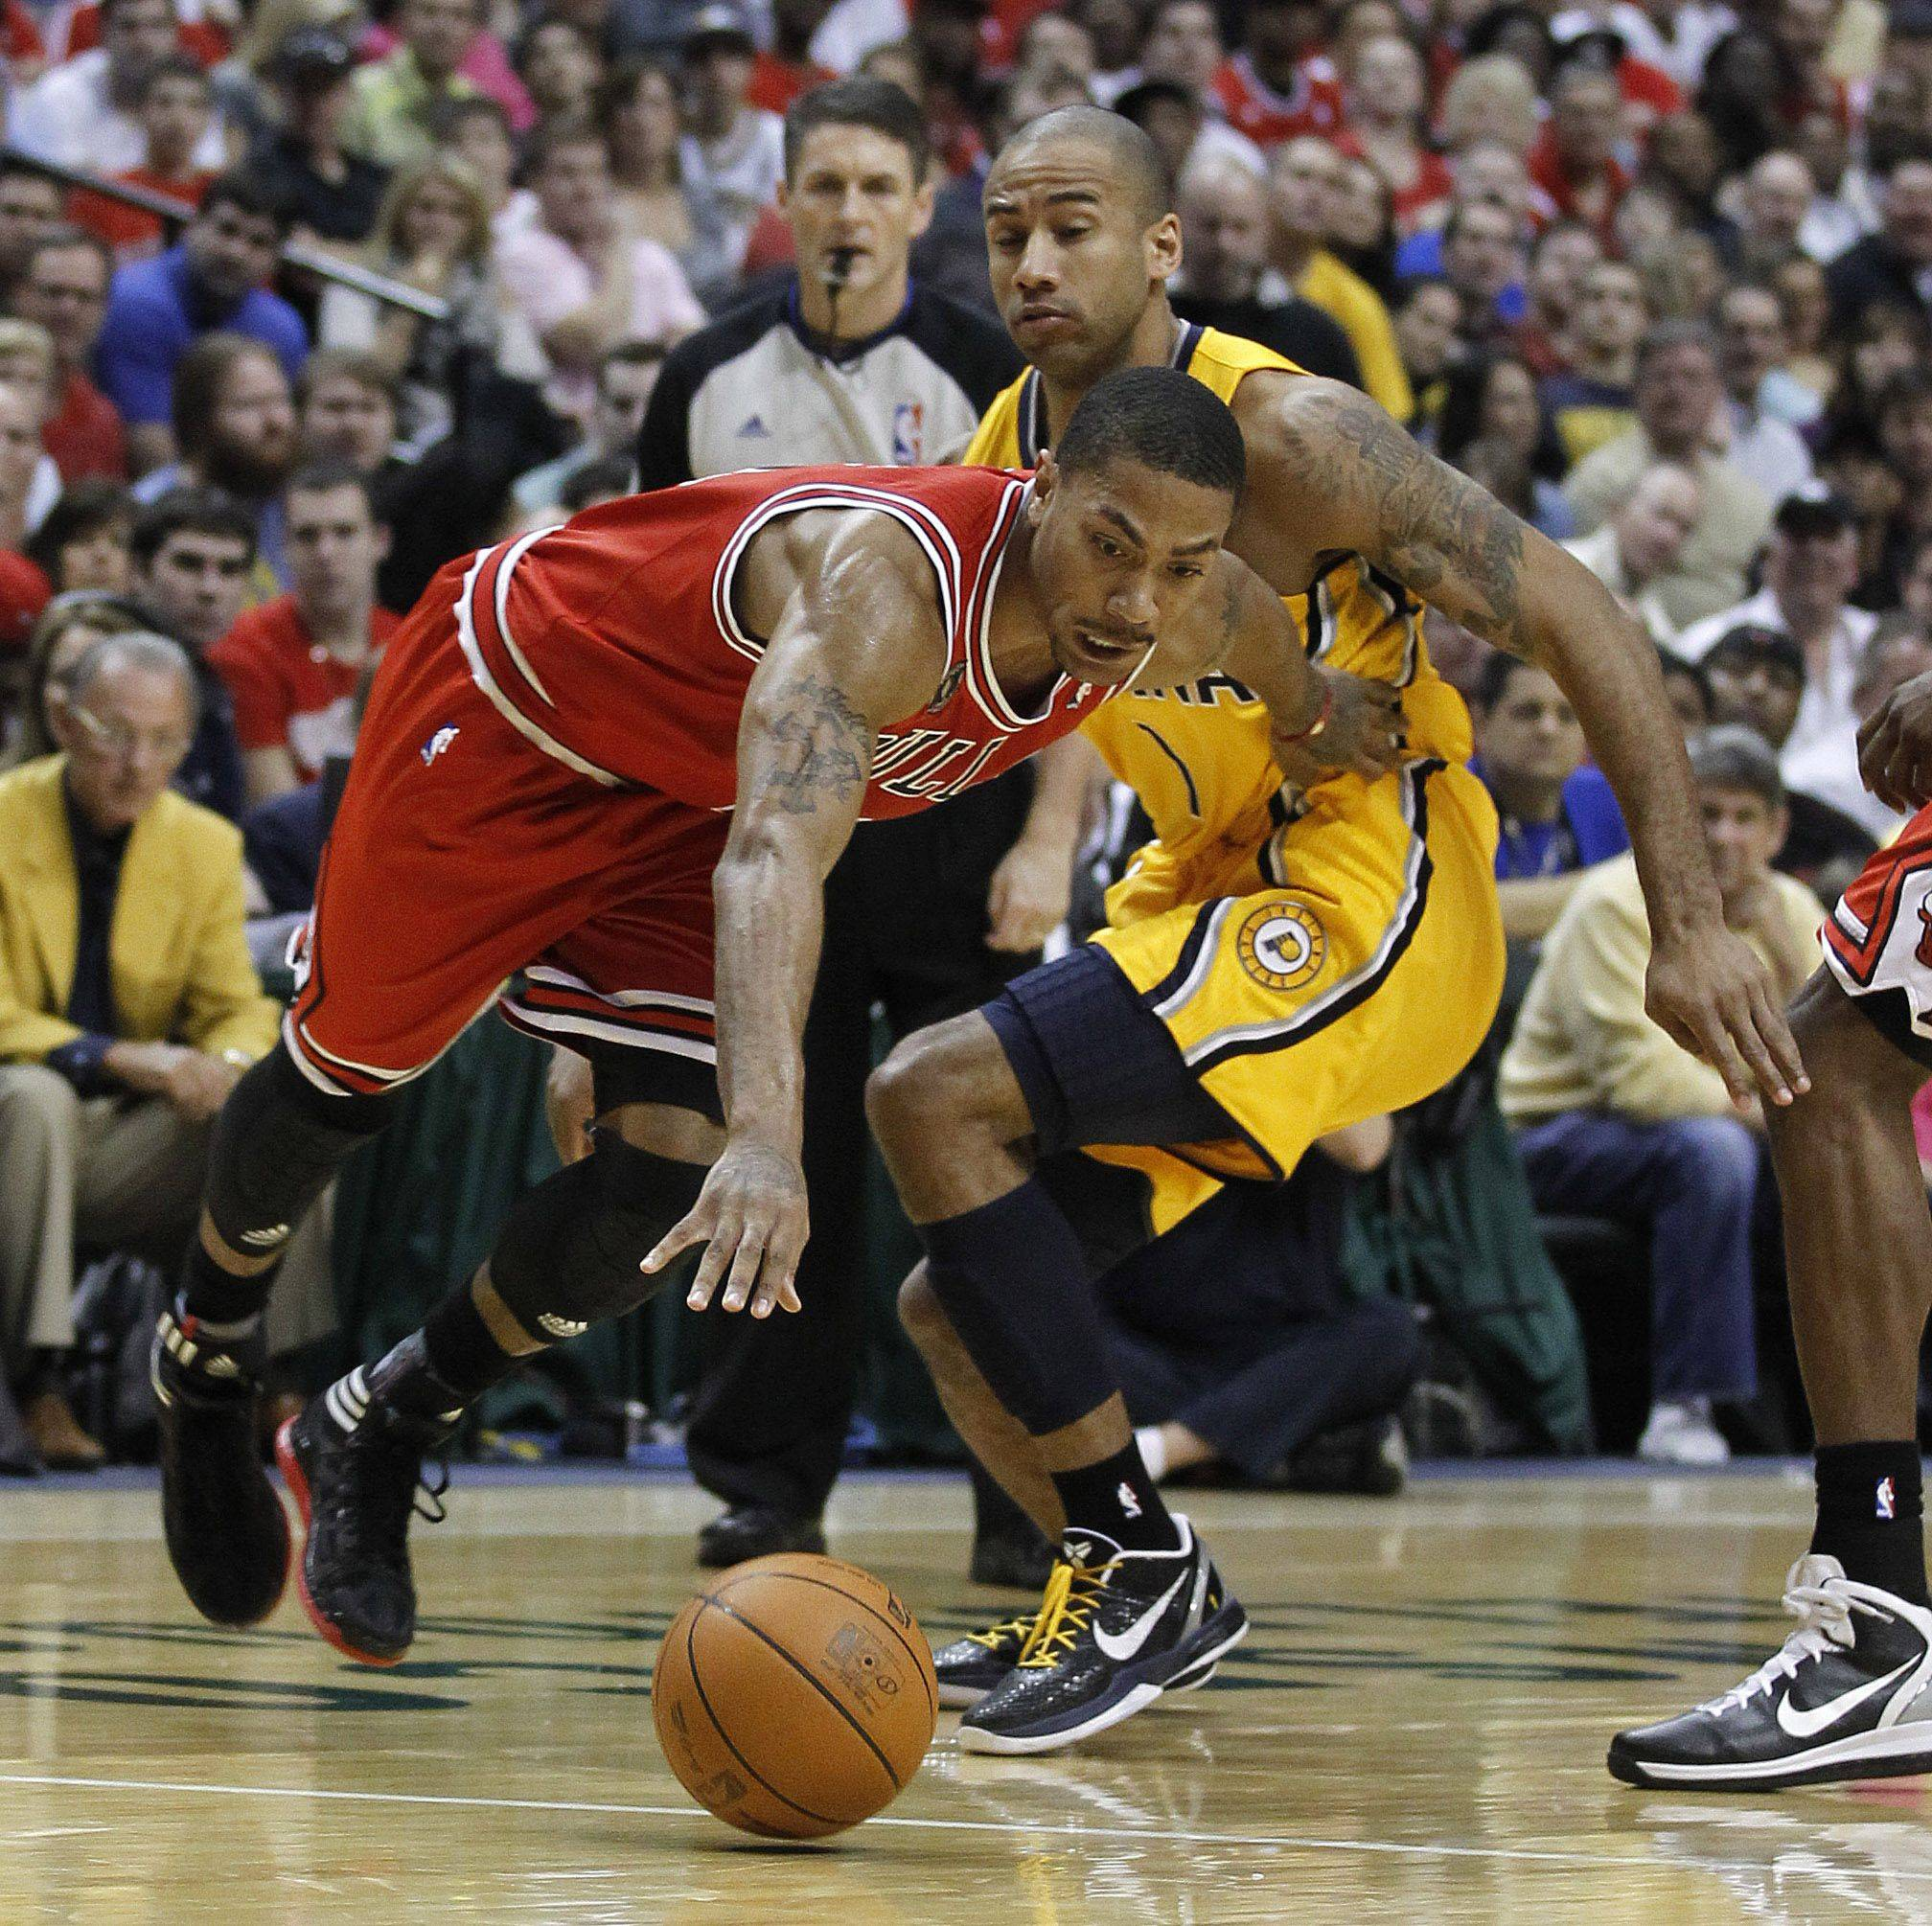 Chicago Bulls' Derrick Rose, left, drives past Indiana Pacers' Dahntay Jones during the first half of Game 4 of a first-round NBA basketball series, Saturday, April 23, 2011, in Indianapolis.